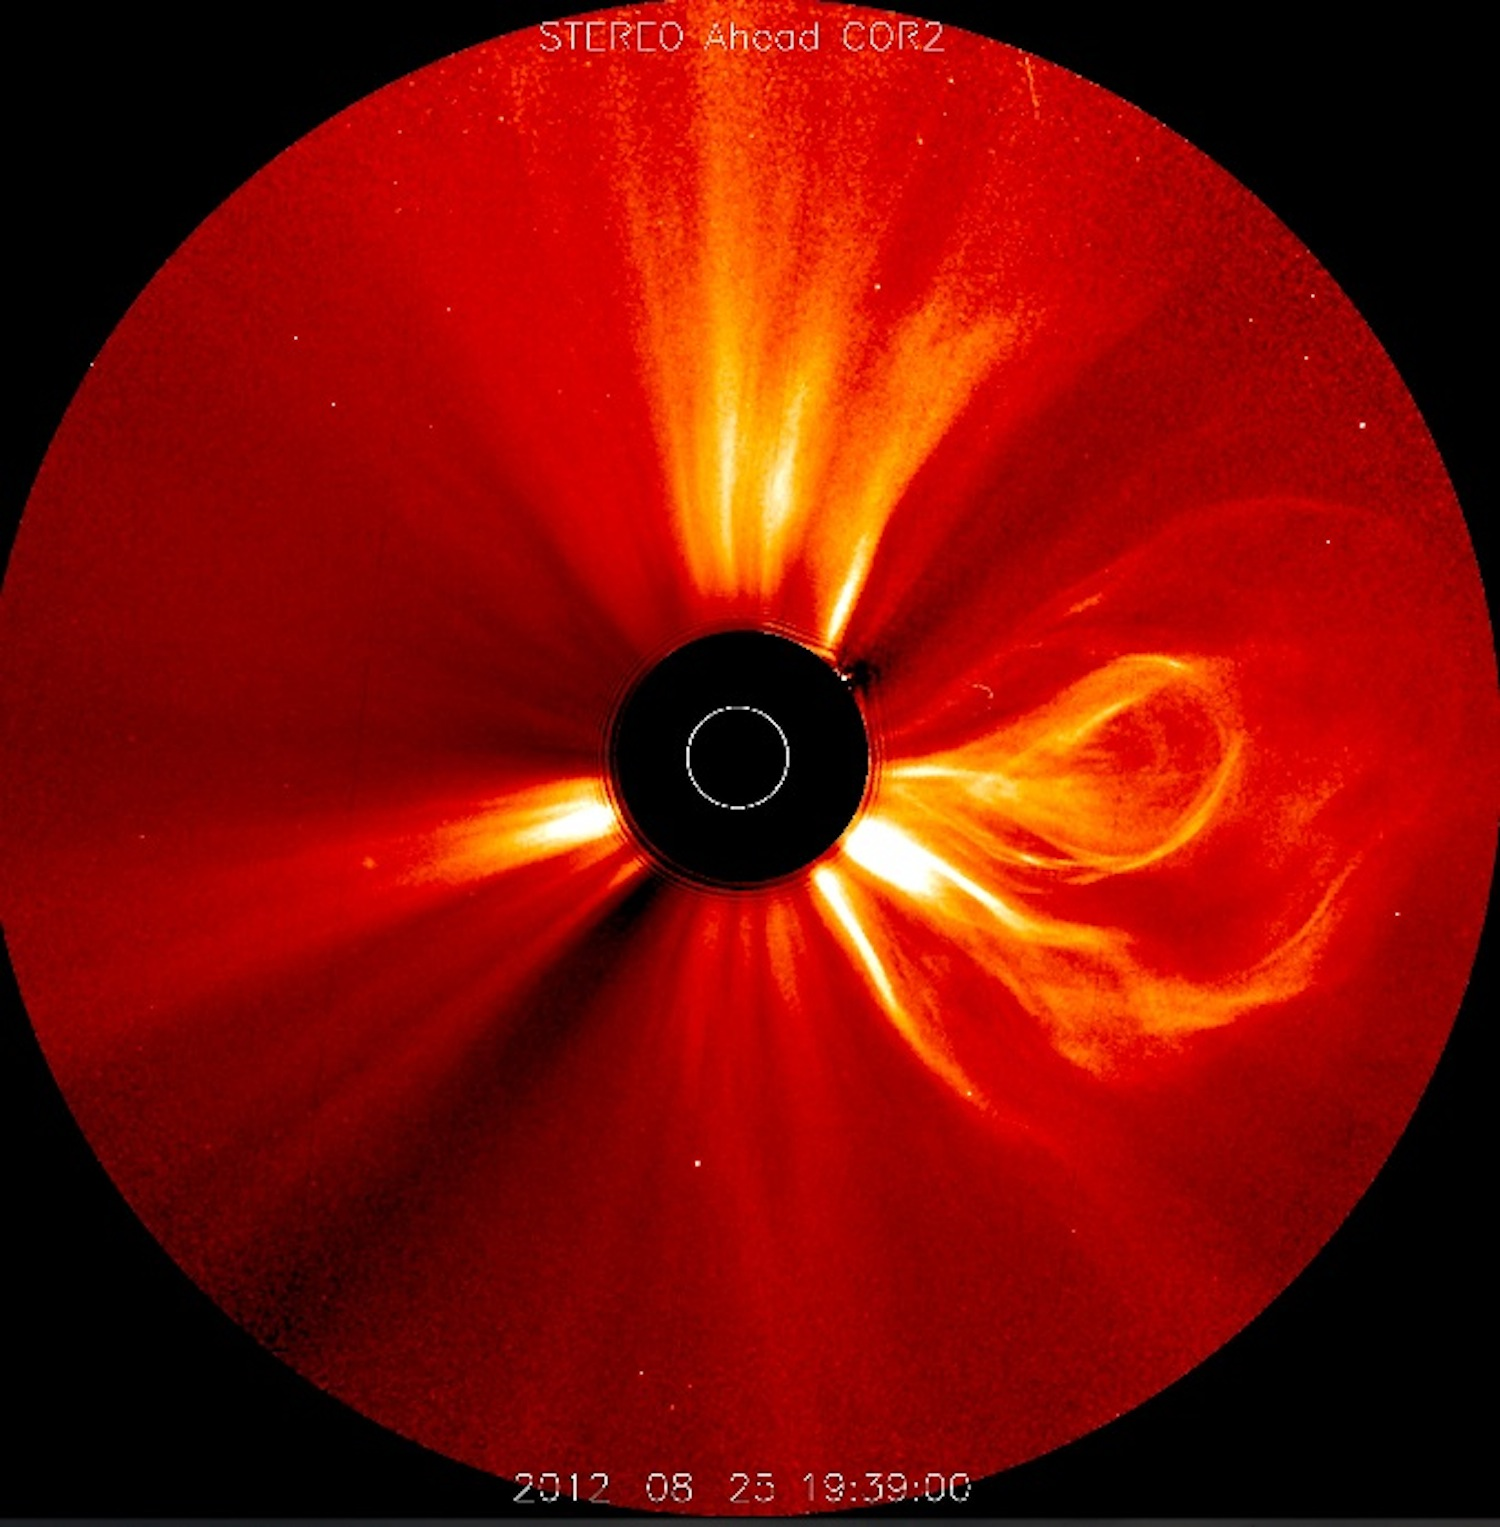 Giant Solar Flare and Prominence: STEREO